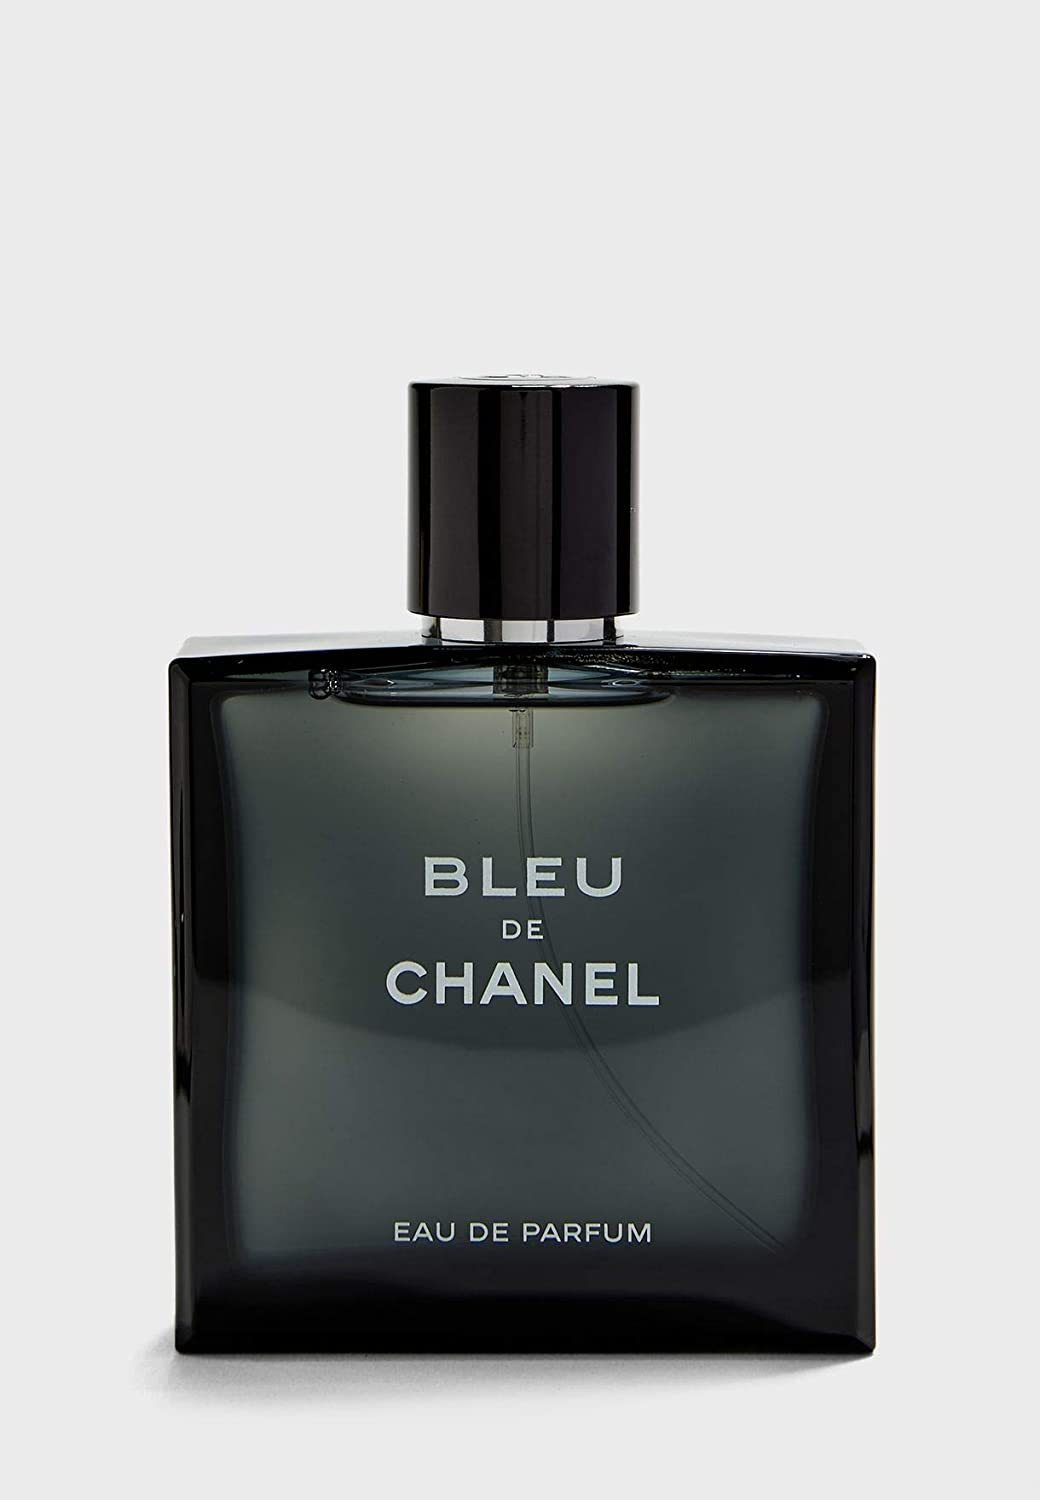 CHANEL Bleu 100 ml - eau de parfum (Men, Invierno, 100 ml): Amazon.es